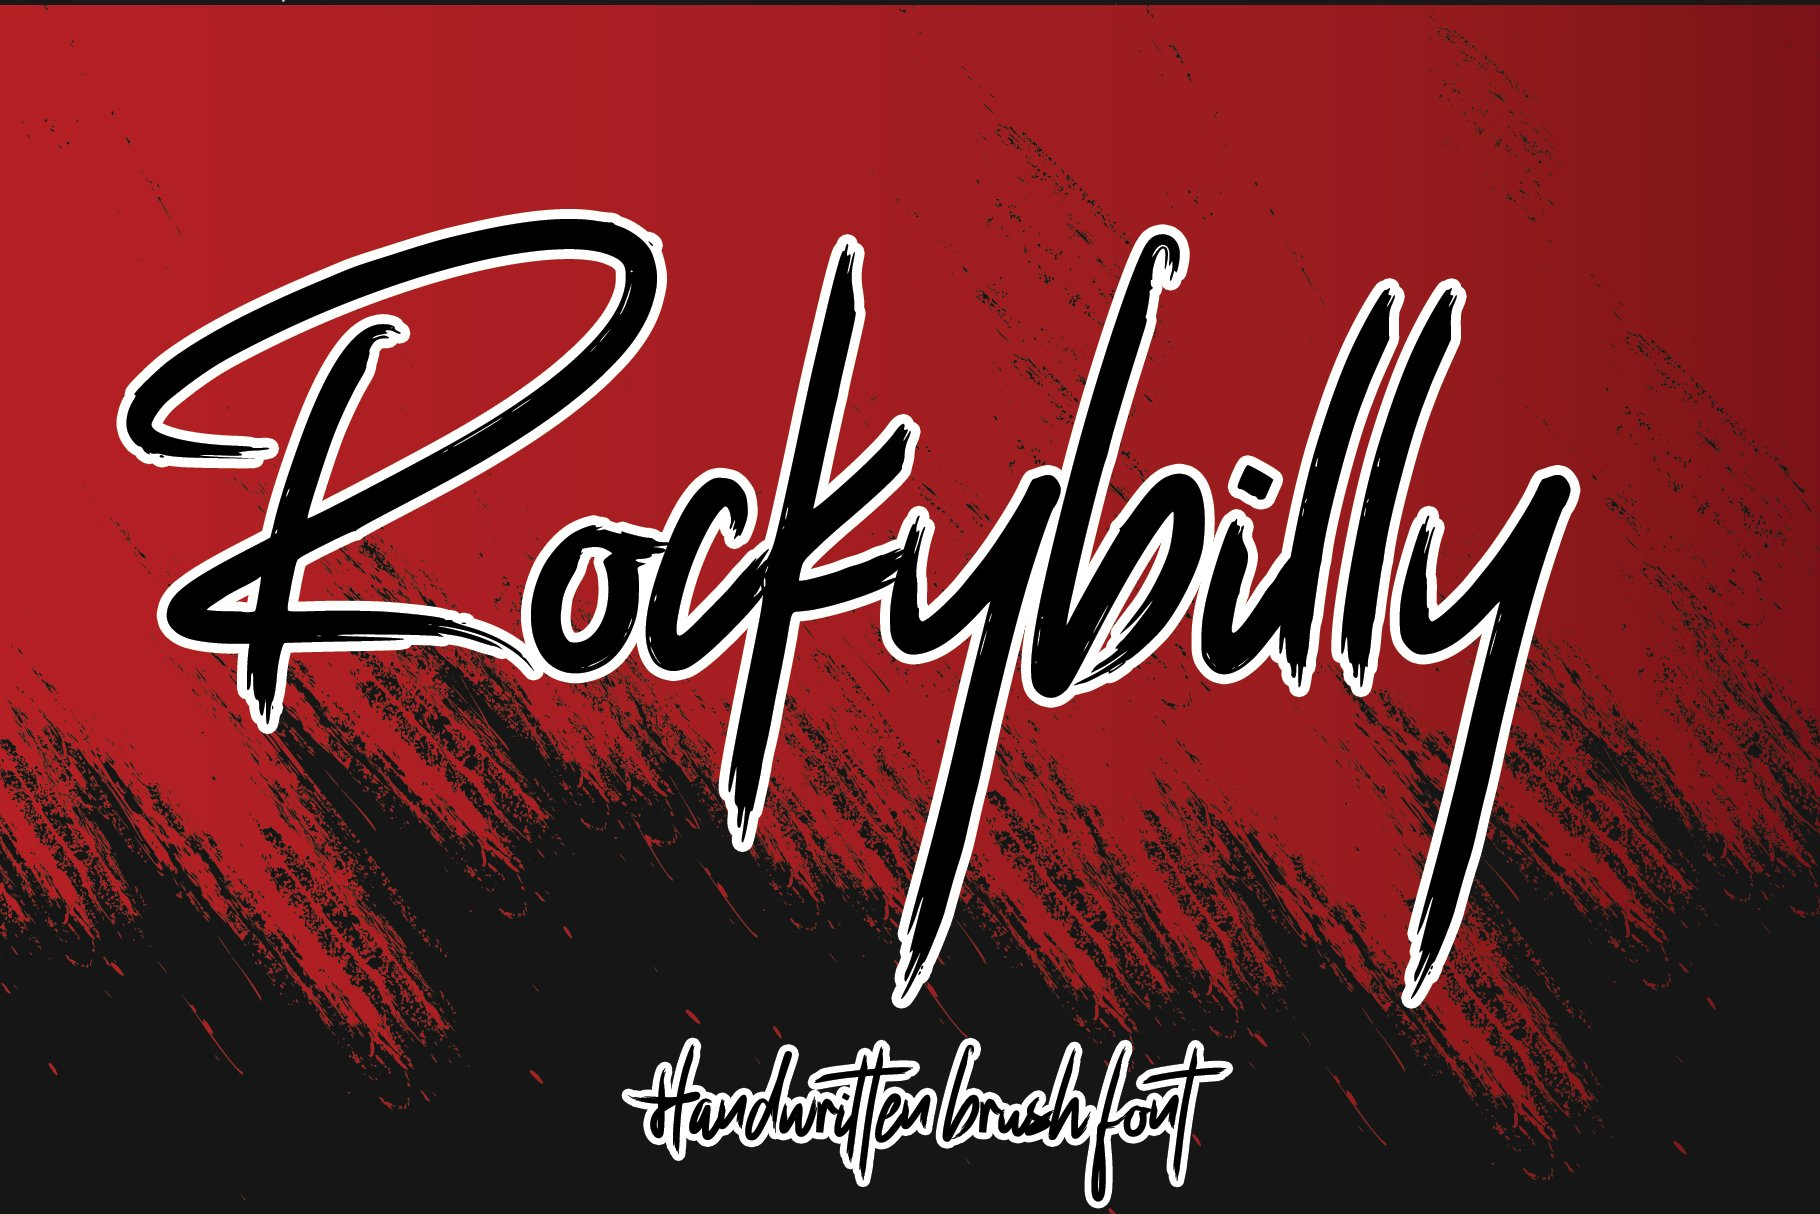 Rockybilly example image 1